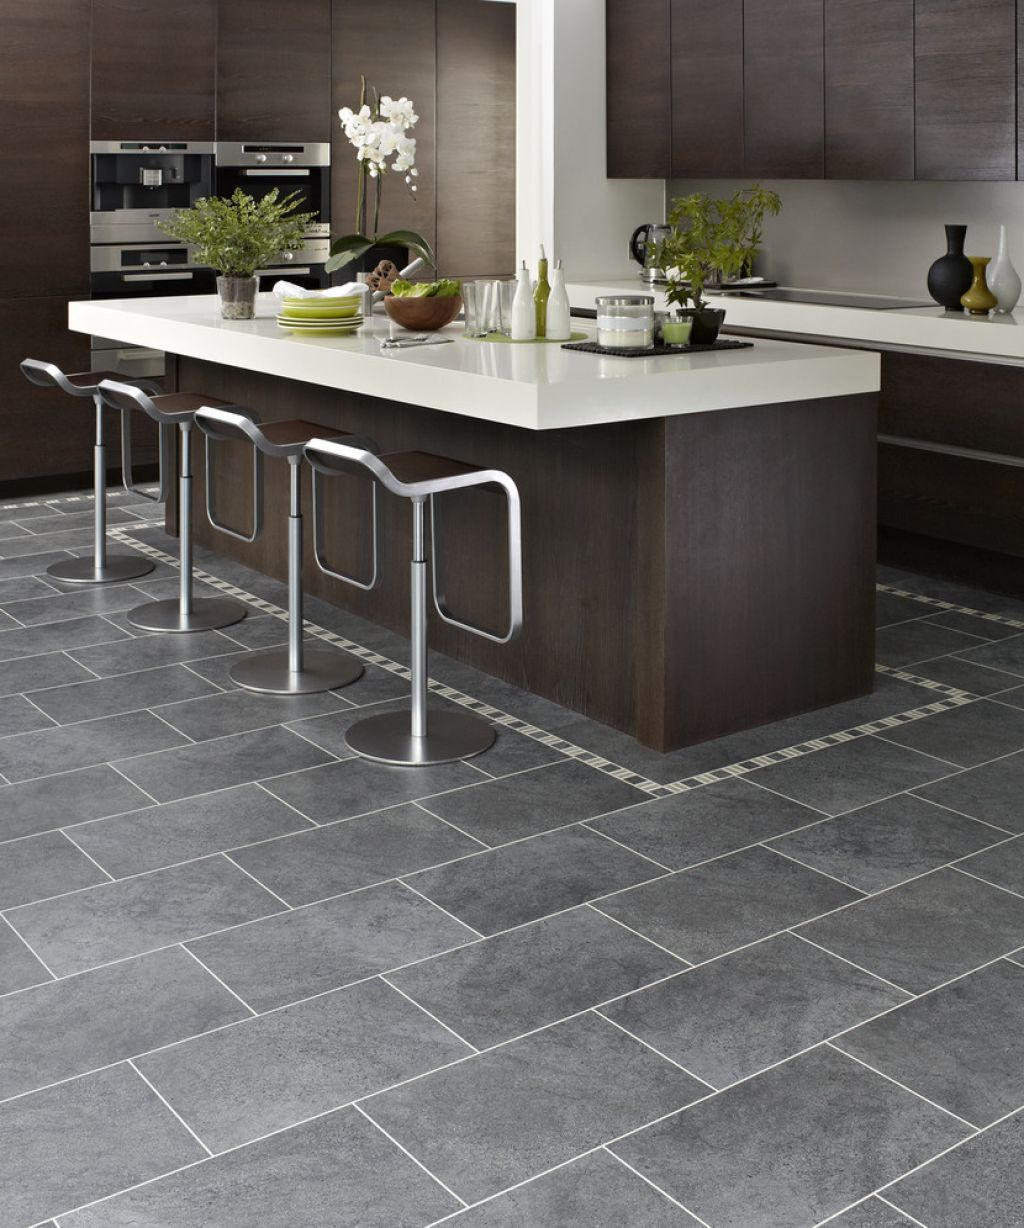 Floor Tile Kitchen Google Image Result For Https S Media Cache Ak0pinimgcom 736x